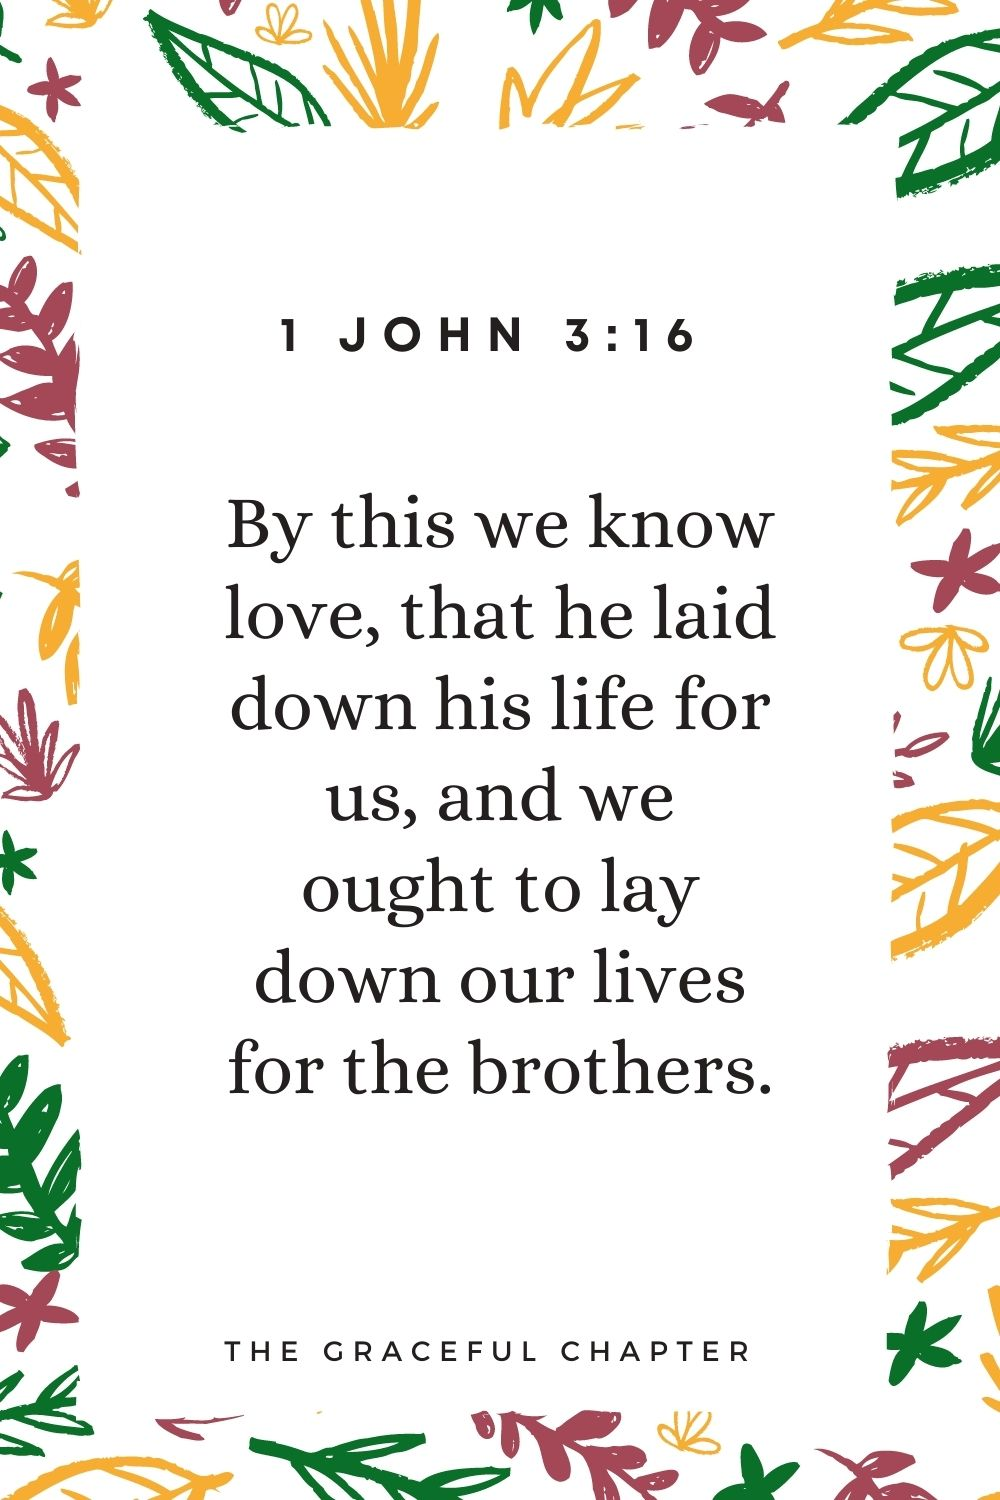 By this we know love, that he laid down his life for us, and we ought to lay down our lives for the brothers. 1 John 3:16